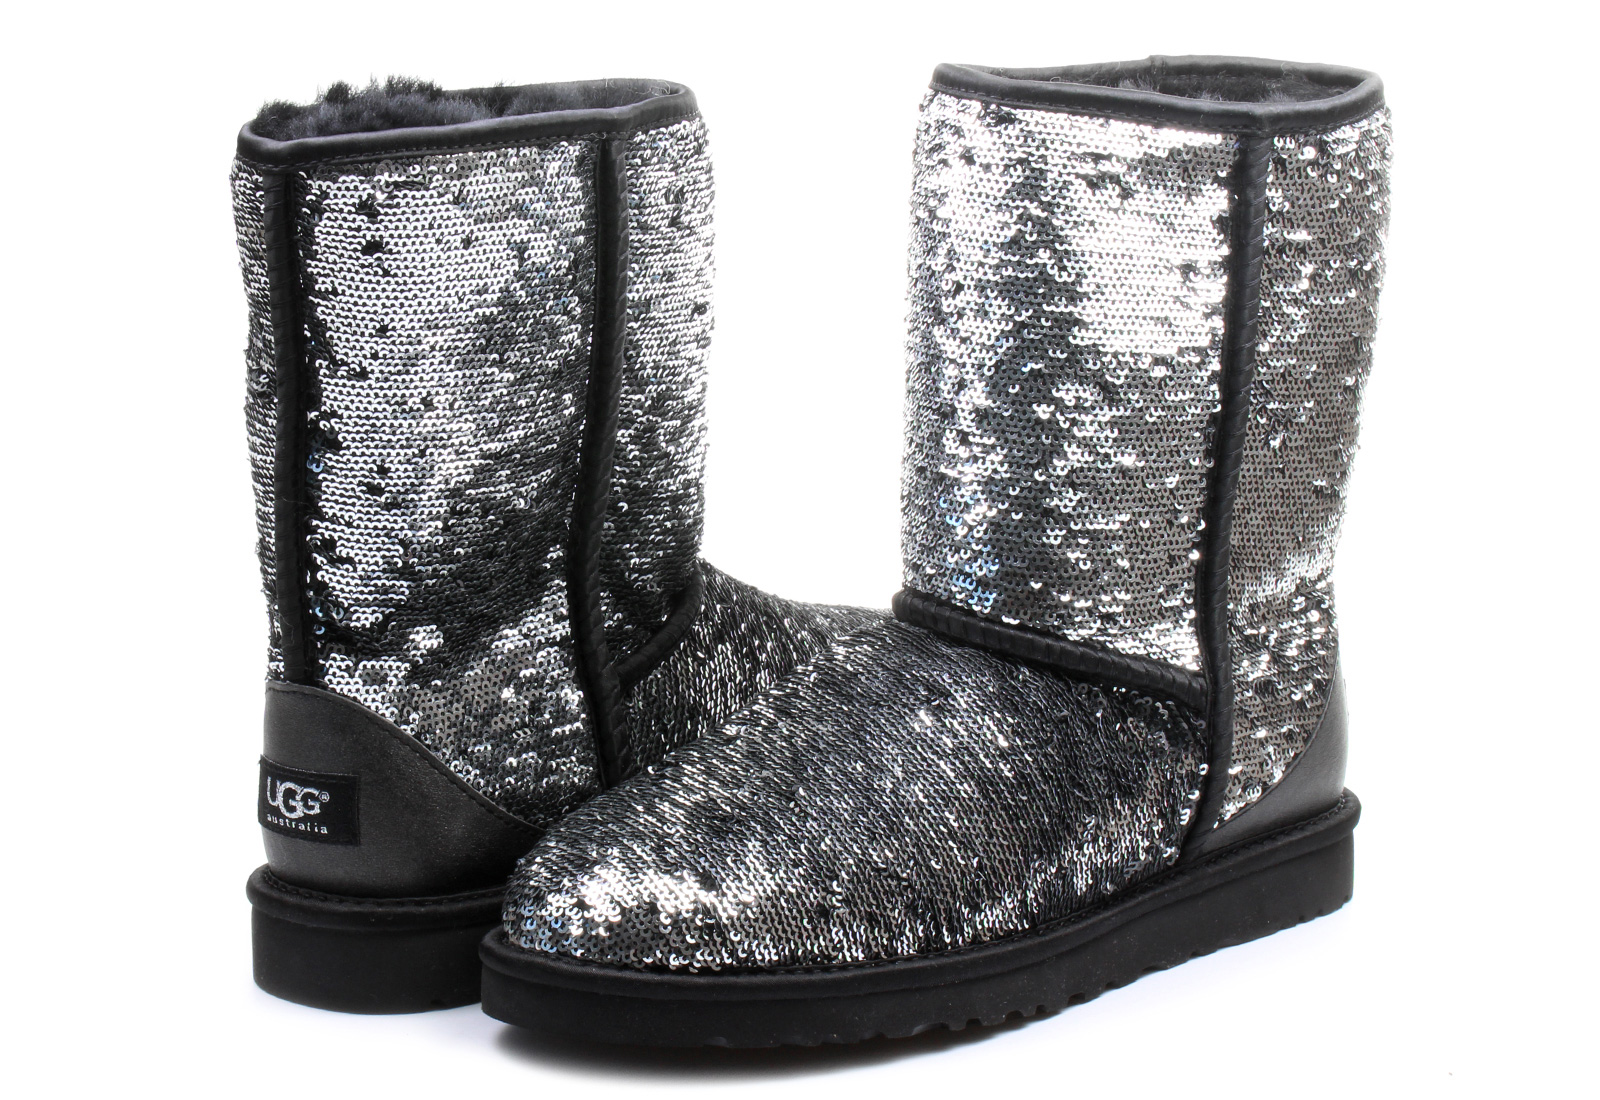 ugg boots w classic short sparkles 1002765 blm online shop for sneakers shoes and boots. Black Bedroom Furniture Sets. Home Design Ideas